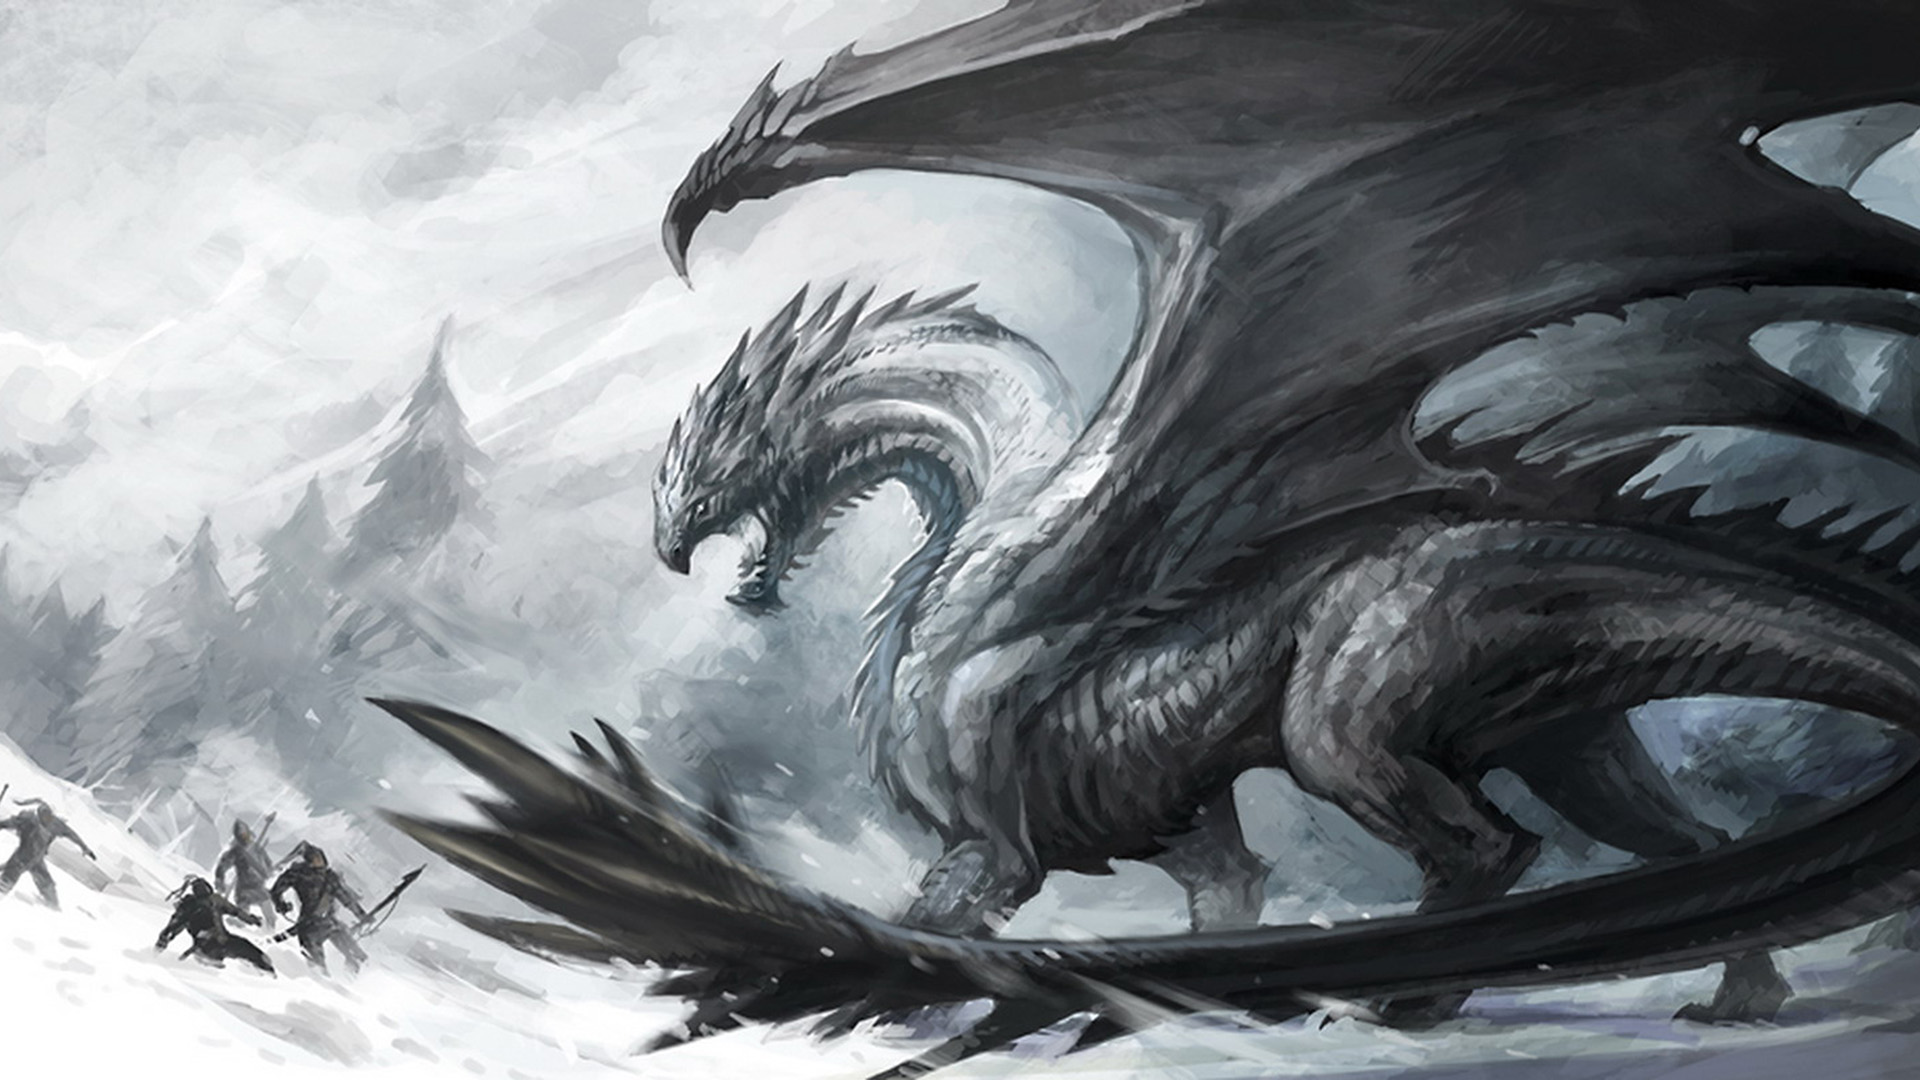 black and white dragon Wallpaper Background 26810 1920x1080